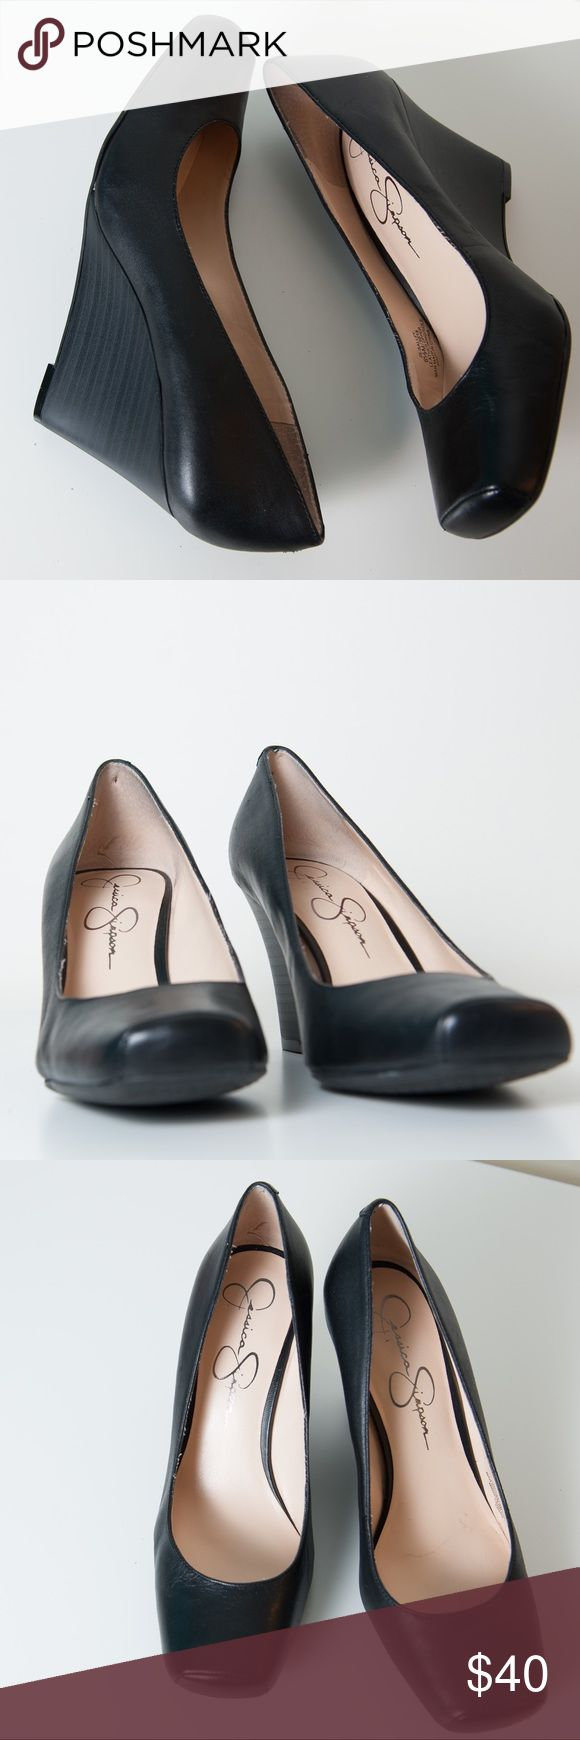 NWOT Jessica Simpson Salley Wedge Pump 6.5 Black Black size 6.5 Jessica Simpson Salley Wedge. Designed with a leather upper and closed toe, it is the perfect addition to any casual office attire. Heel measures approximately 3.25″ Jessica Simpson Shoes Wedges